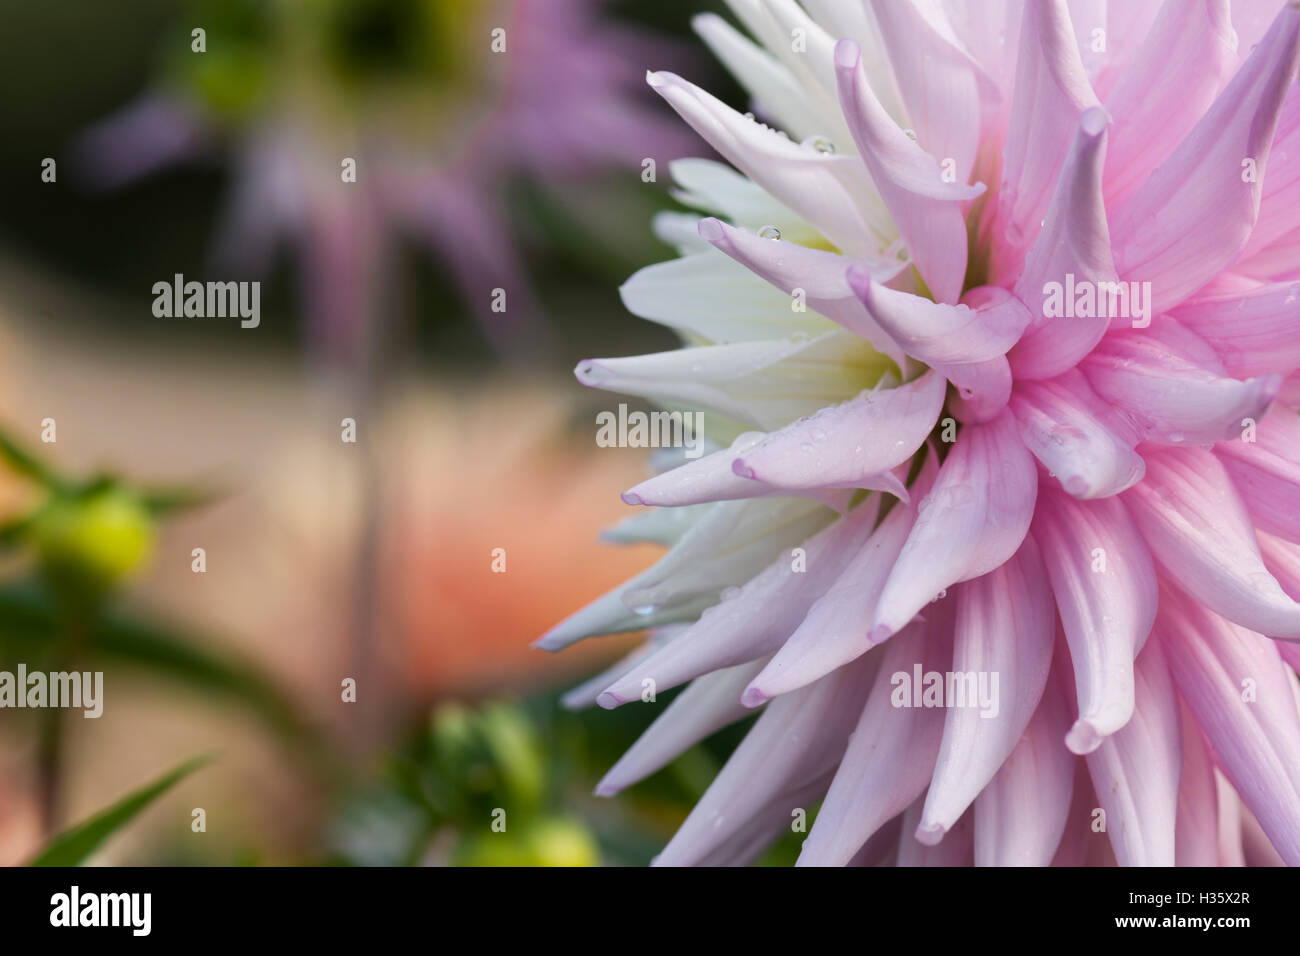 Soft Pink Spiky Dahlia Flower With Graduated Petals Stock Photo